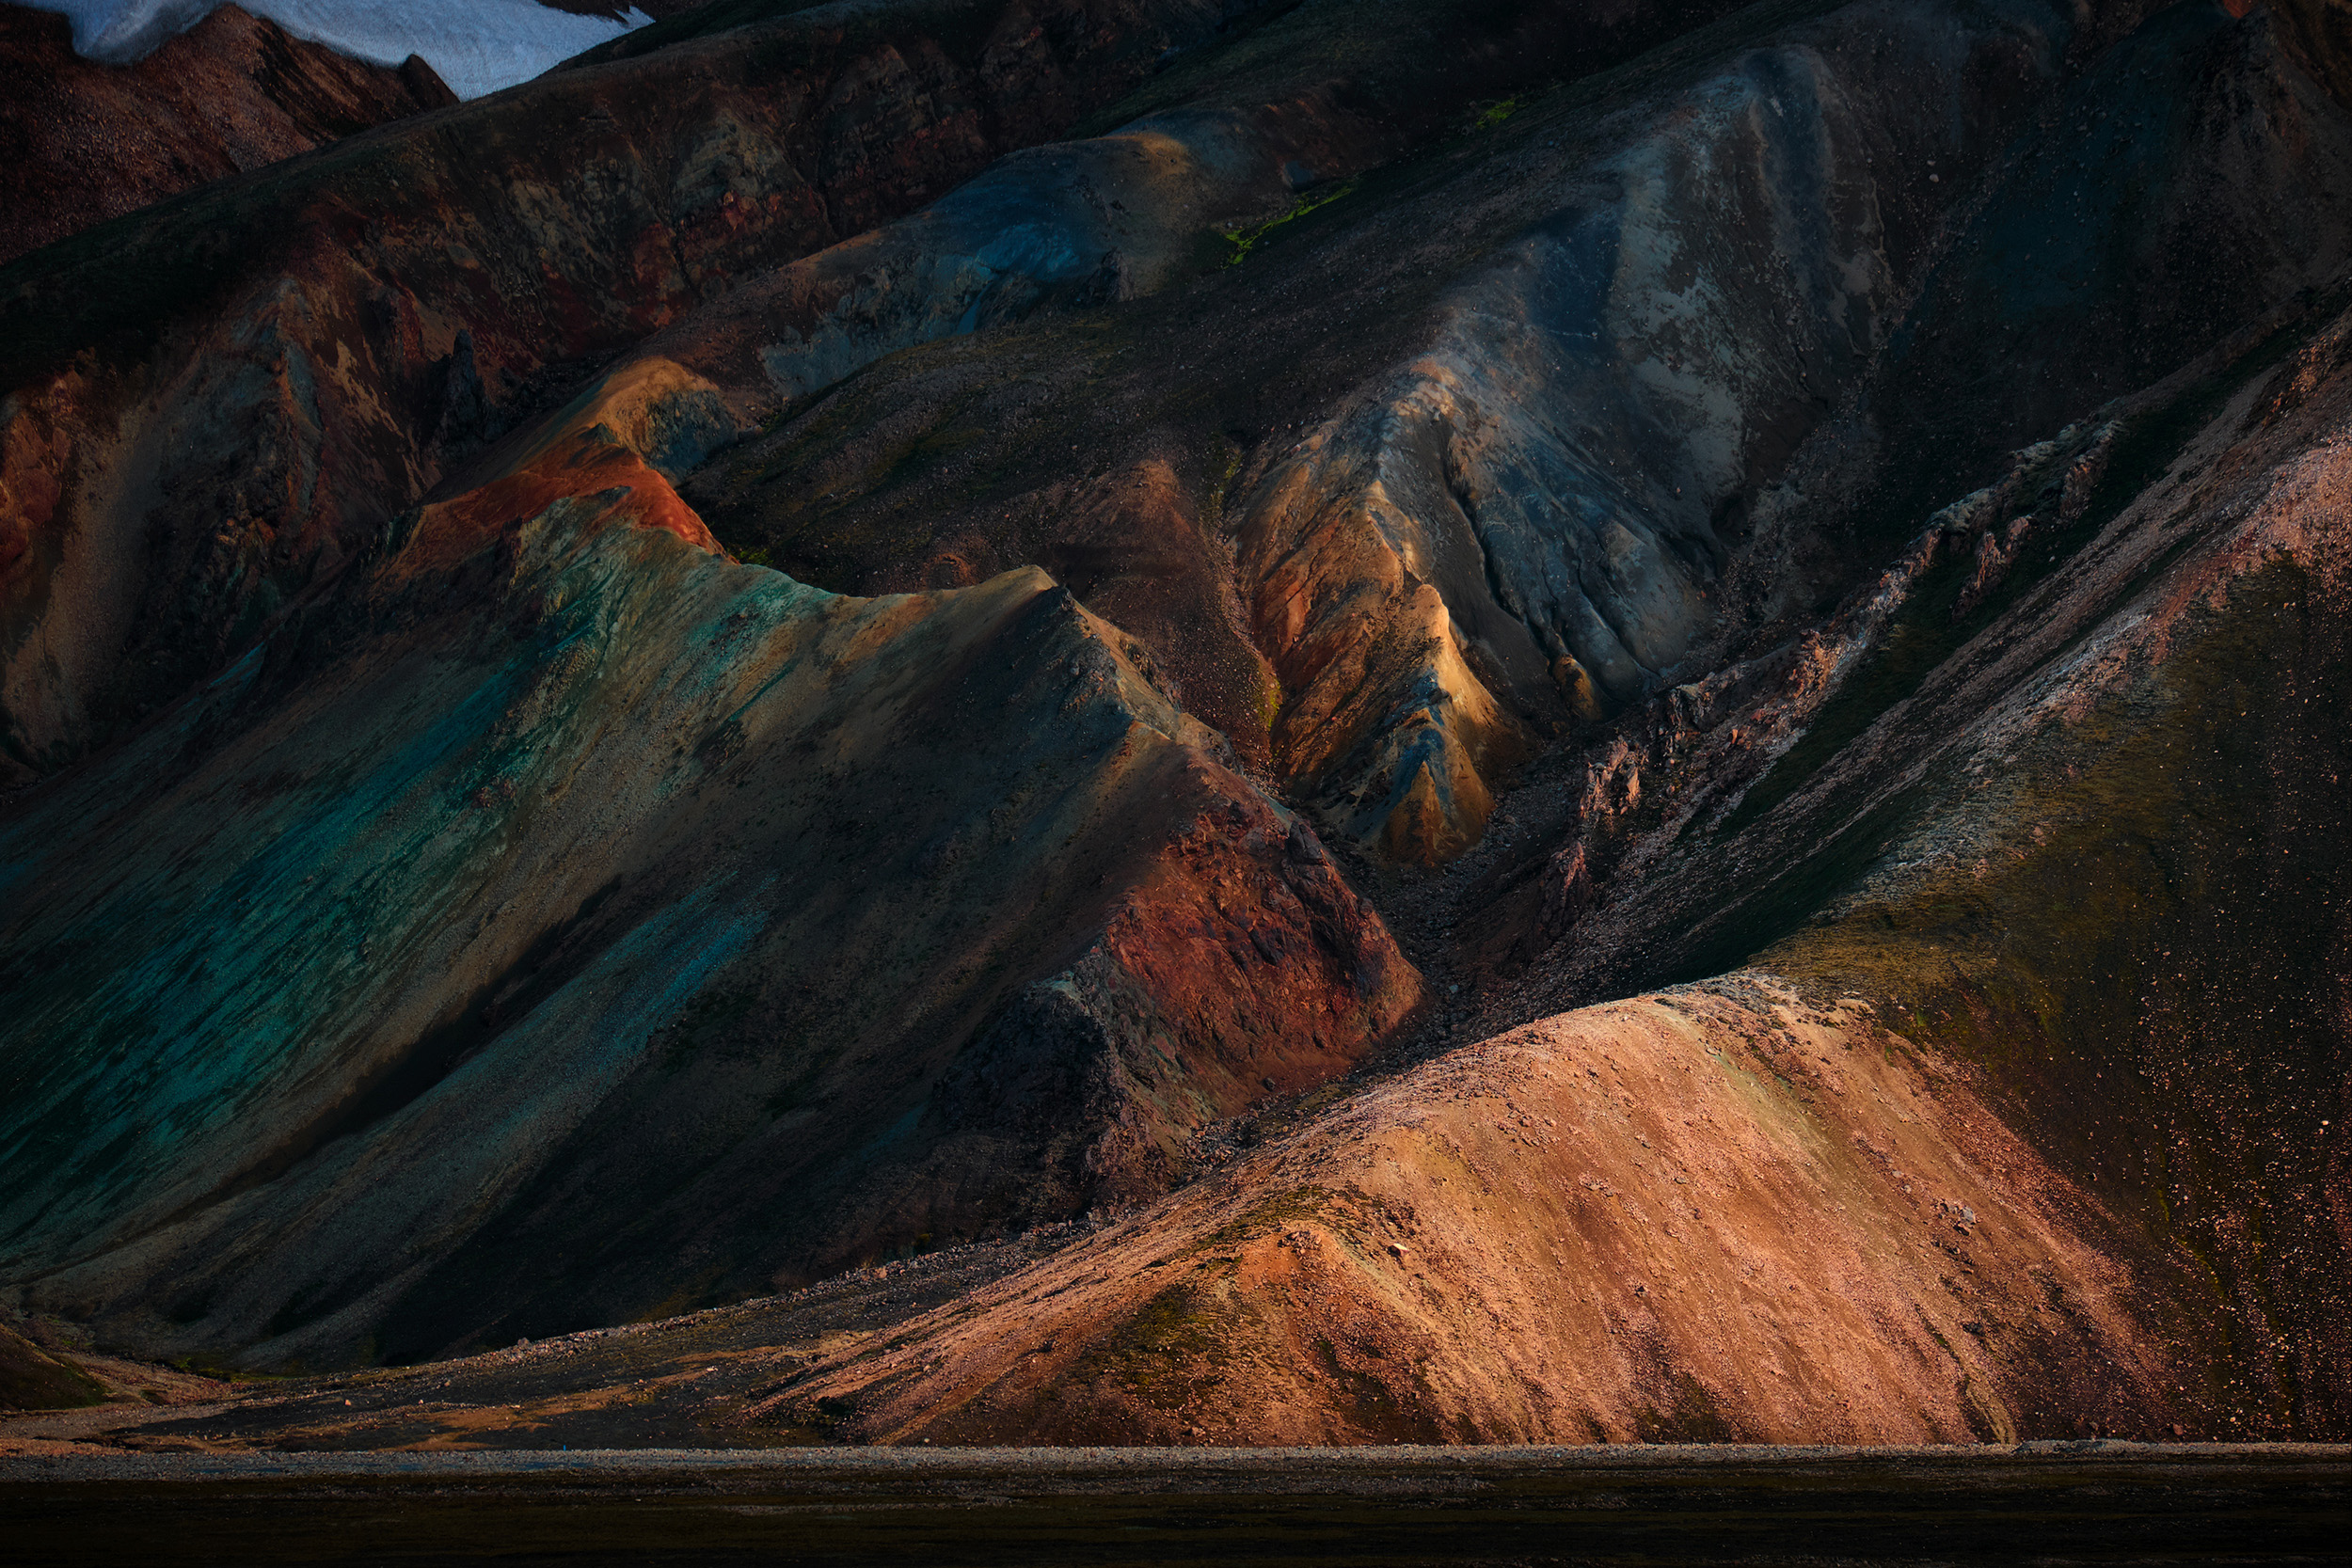 The incredible rhyolite hills of Landmannalaugar